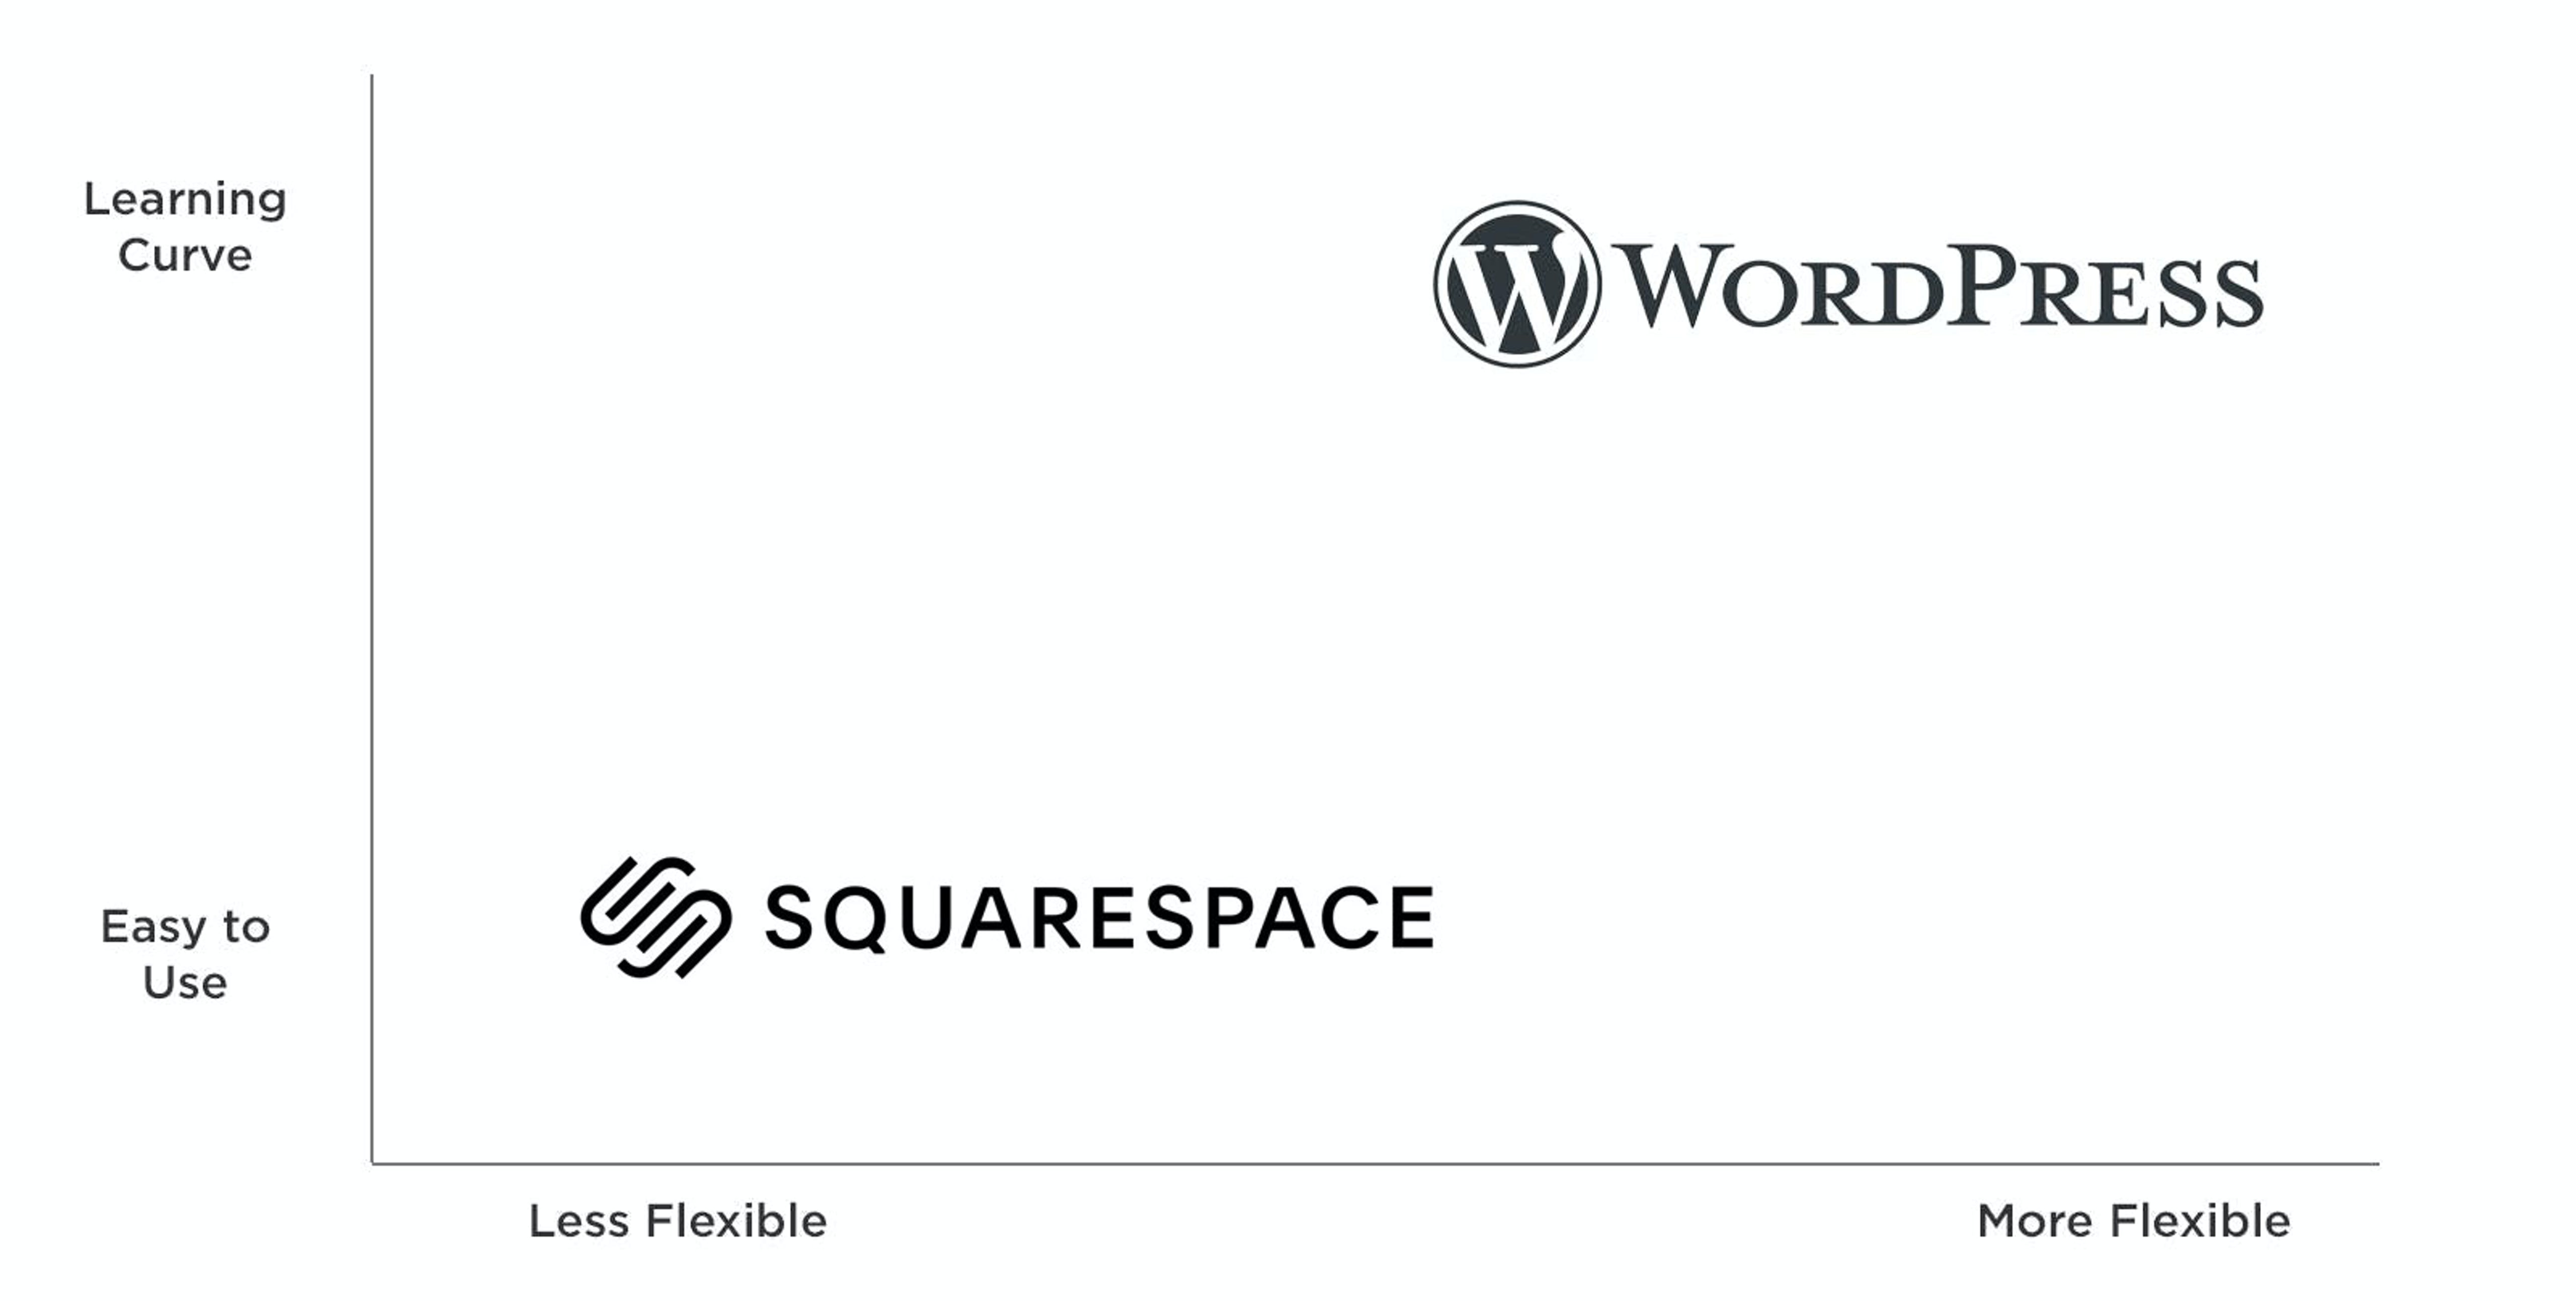 Squarespace is easy but less flexible. Wordpress has a steeper learning curve but is more flexible.